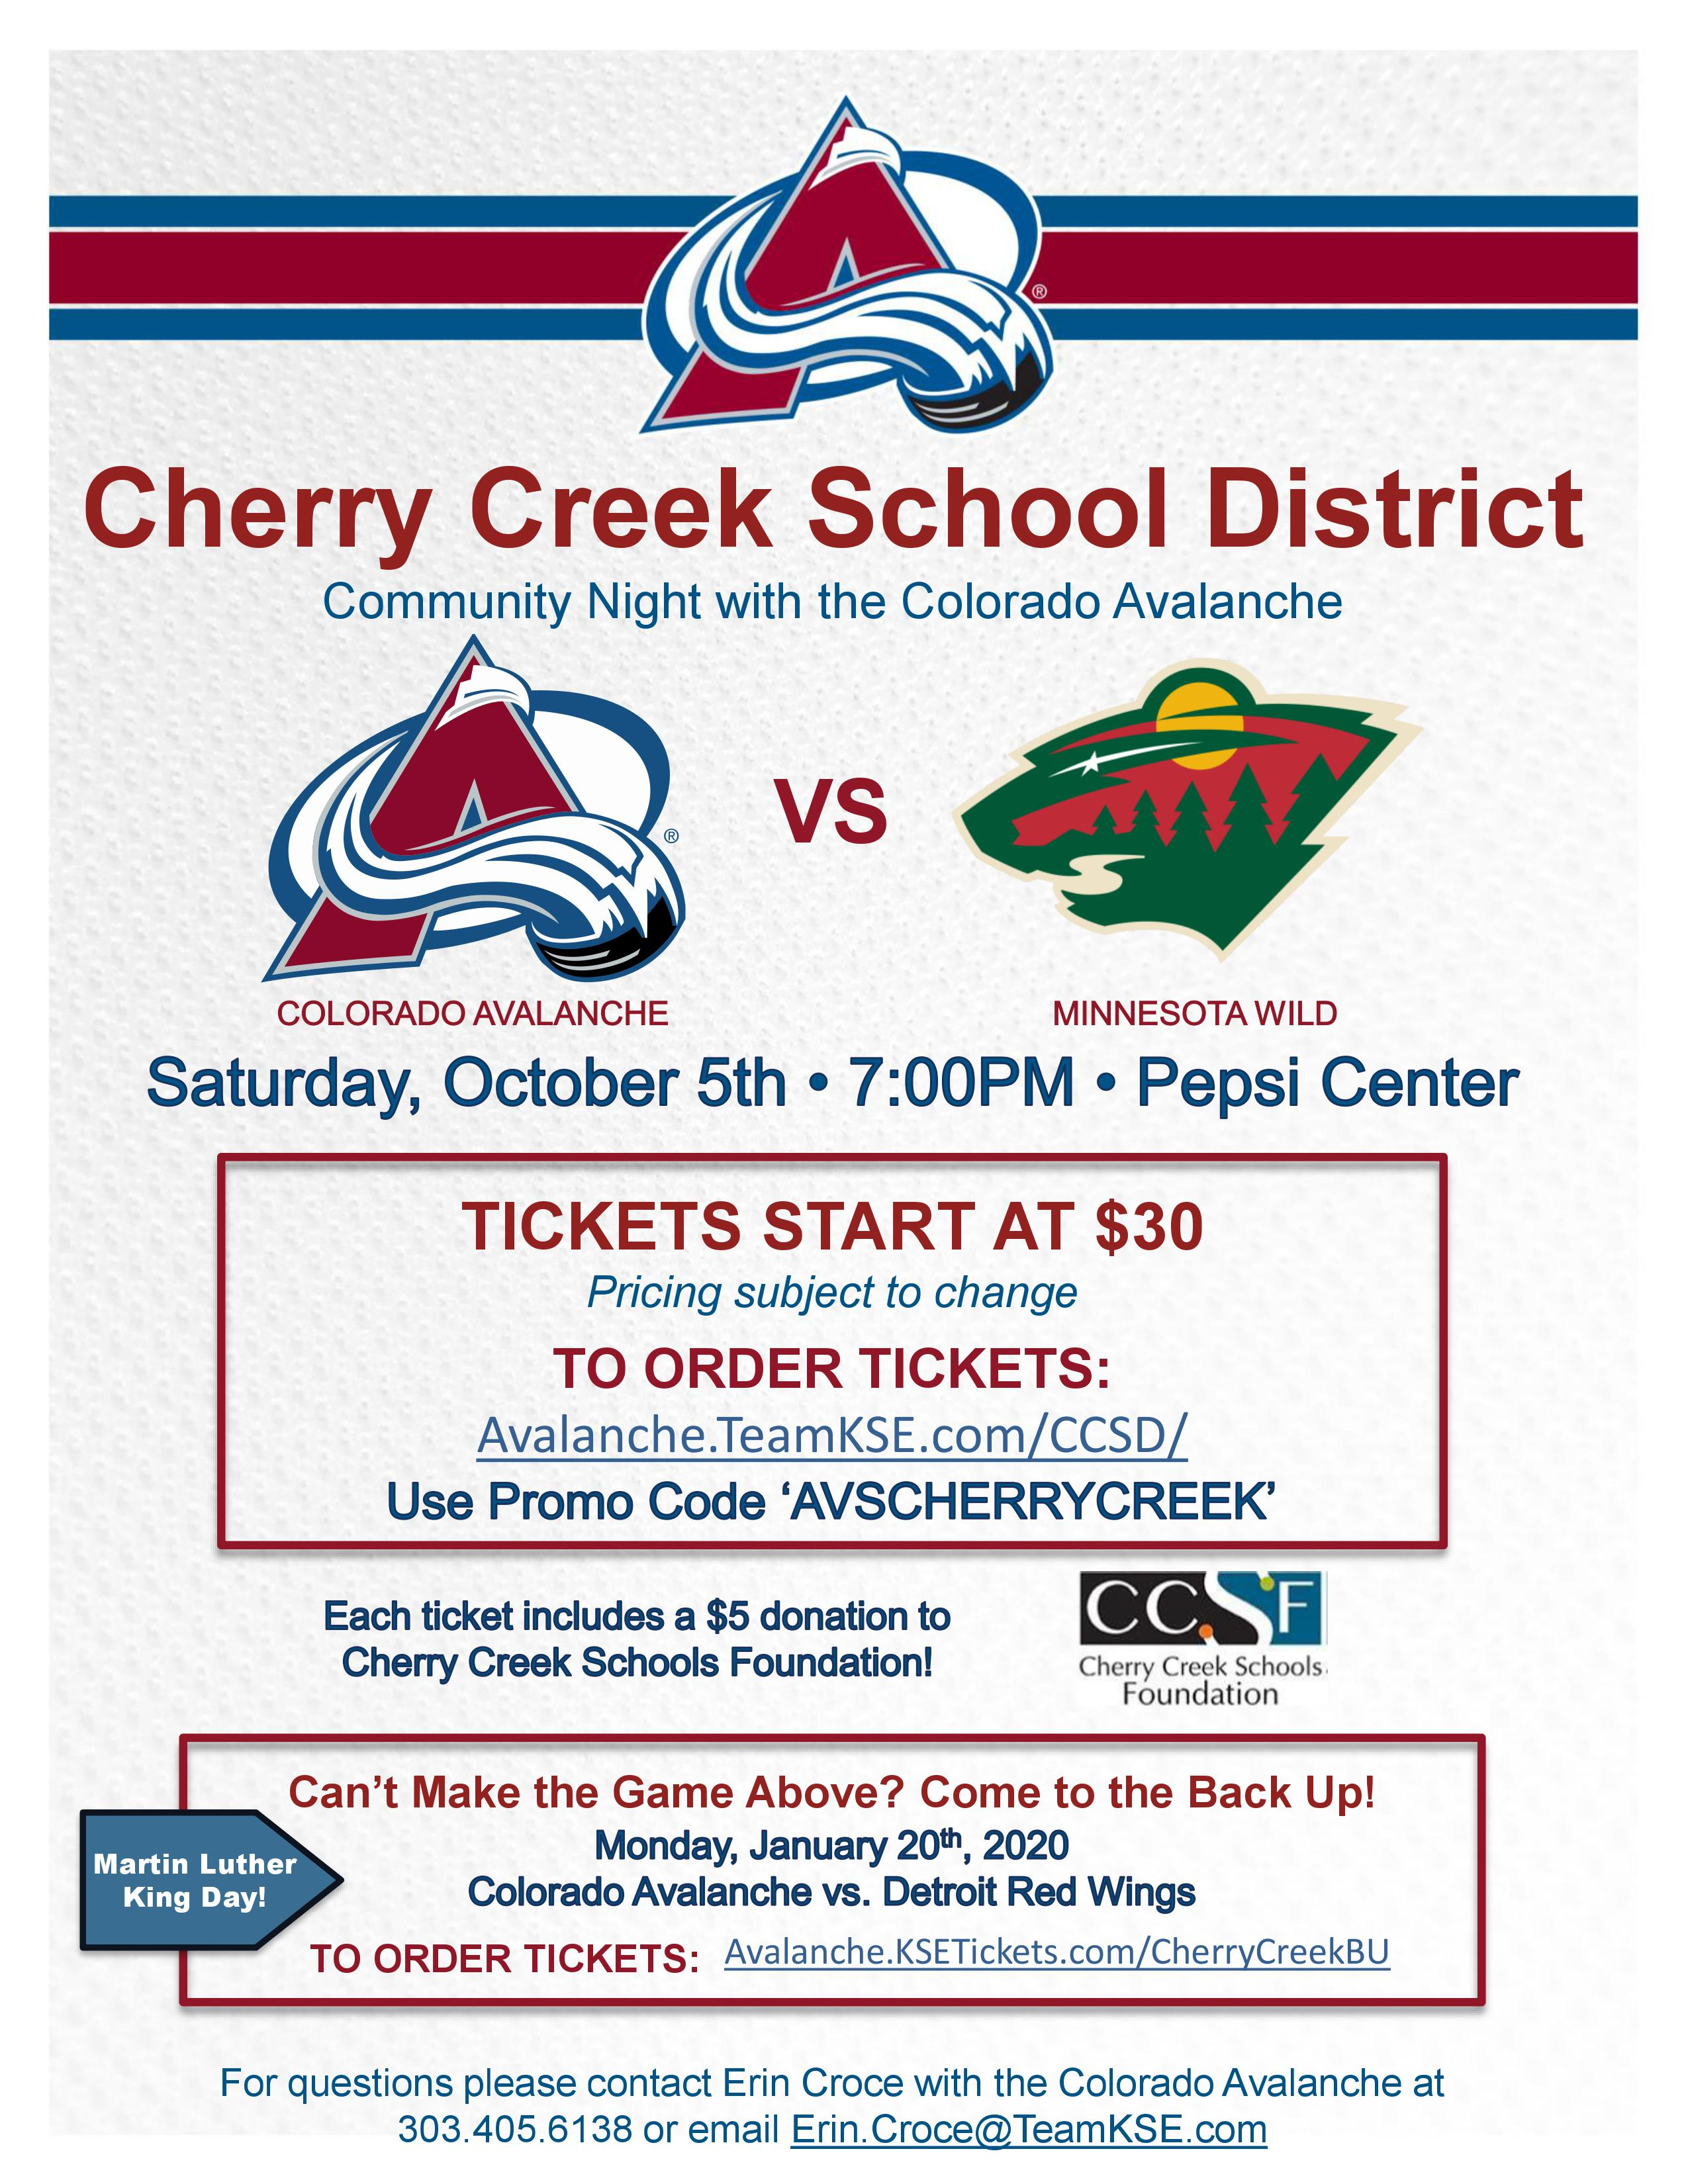 Avalanche vs Wild Community Night 2019